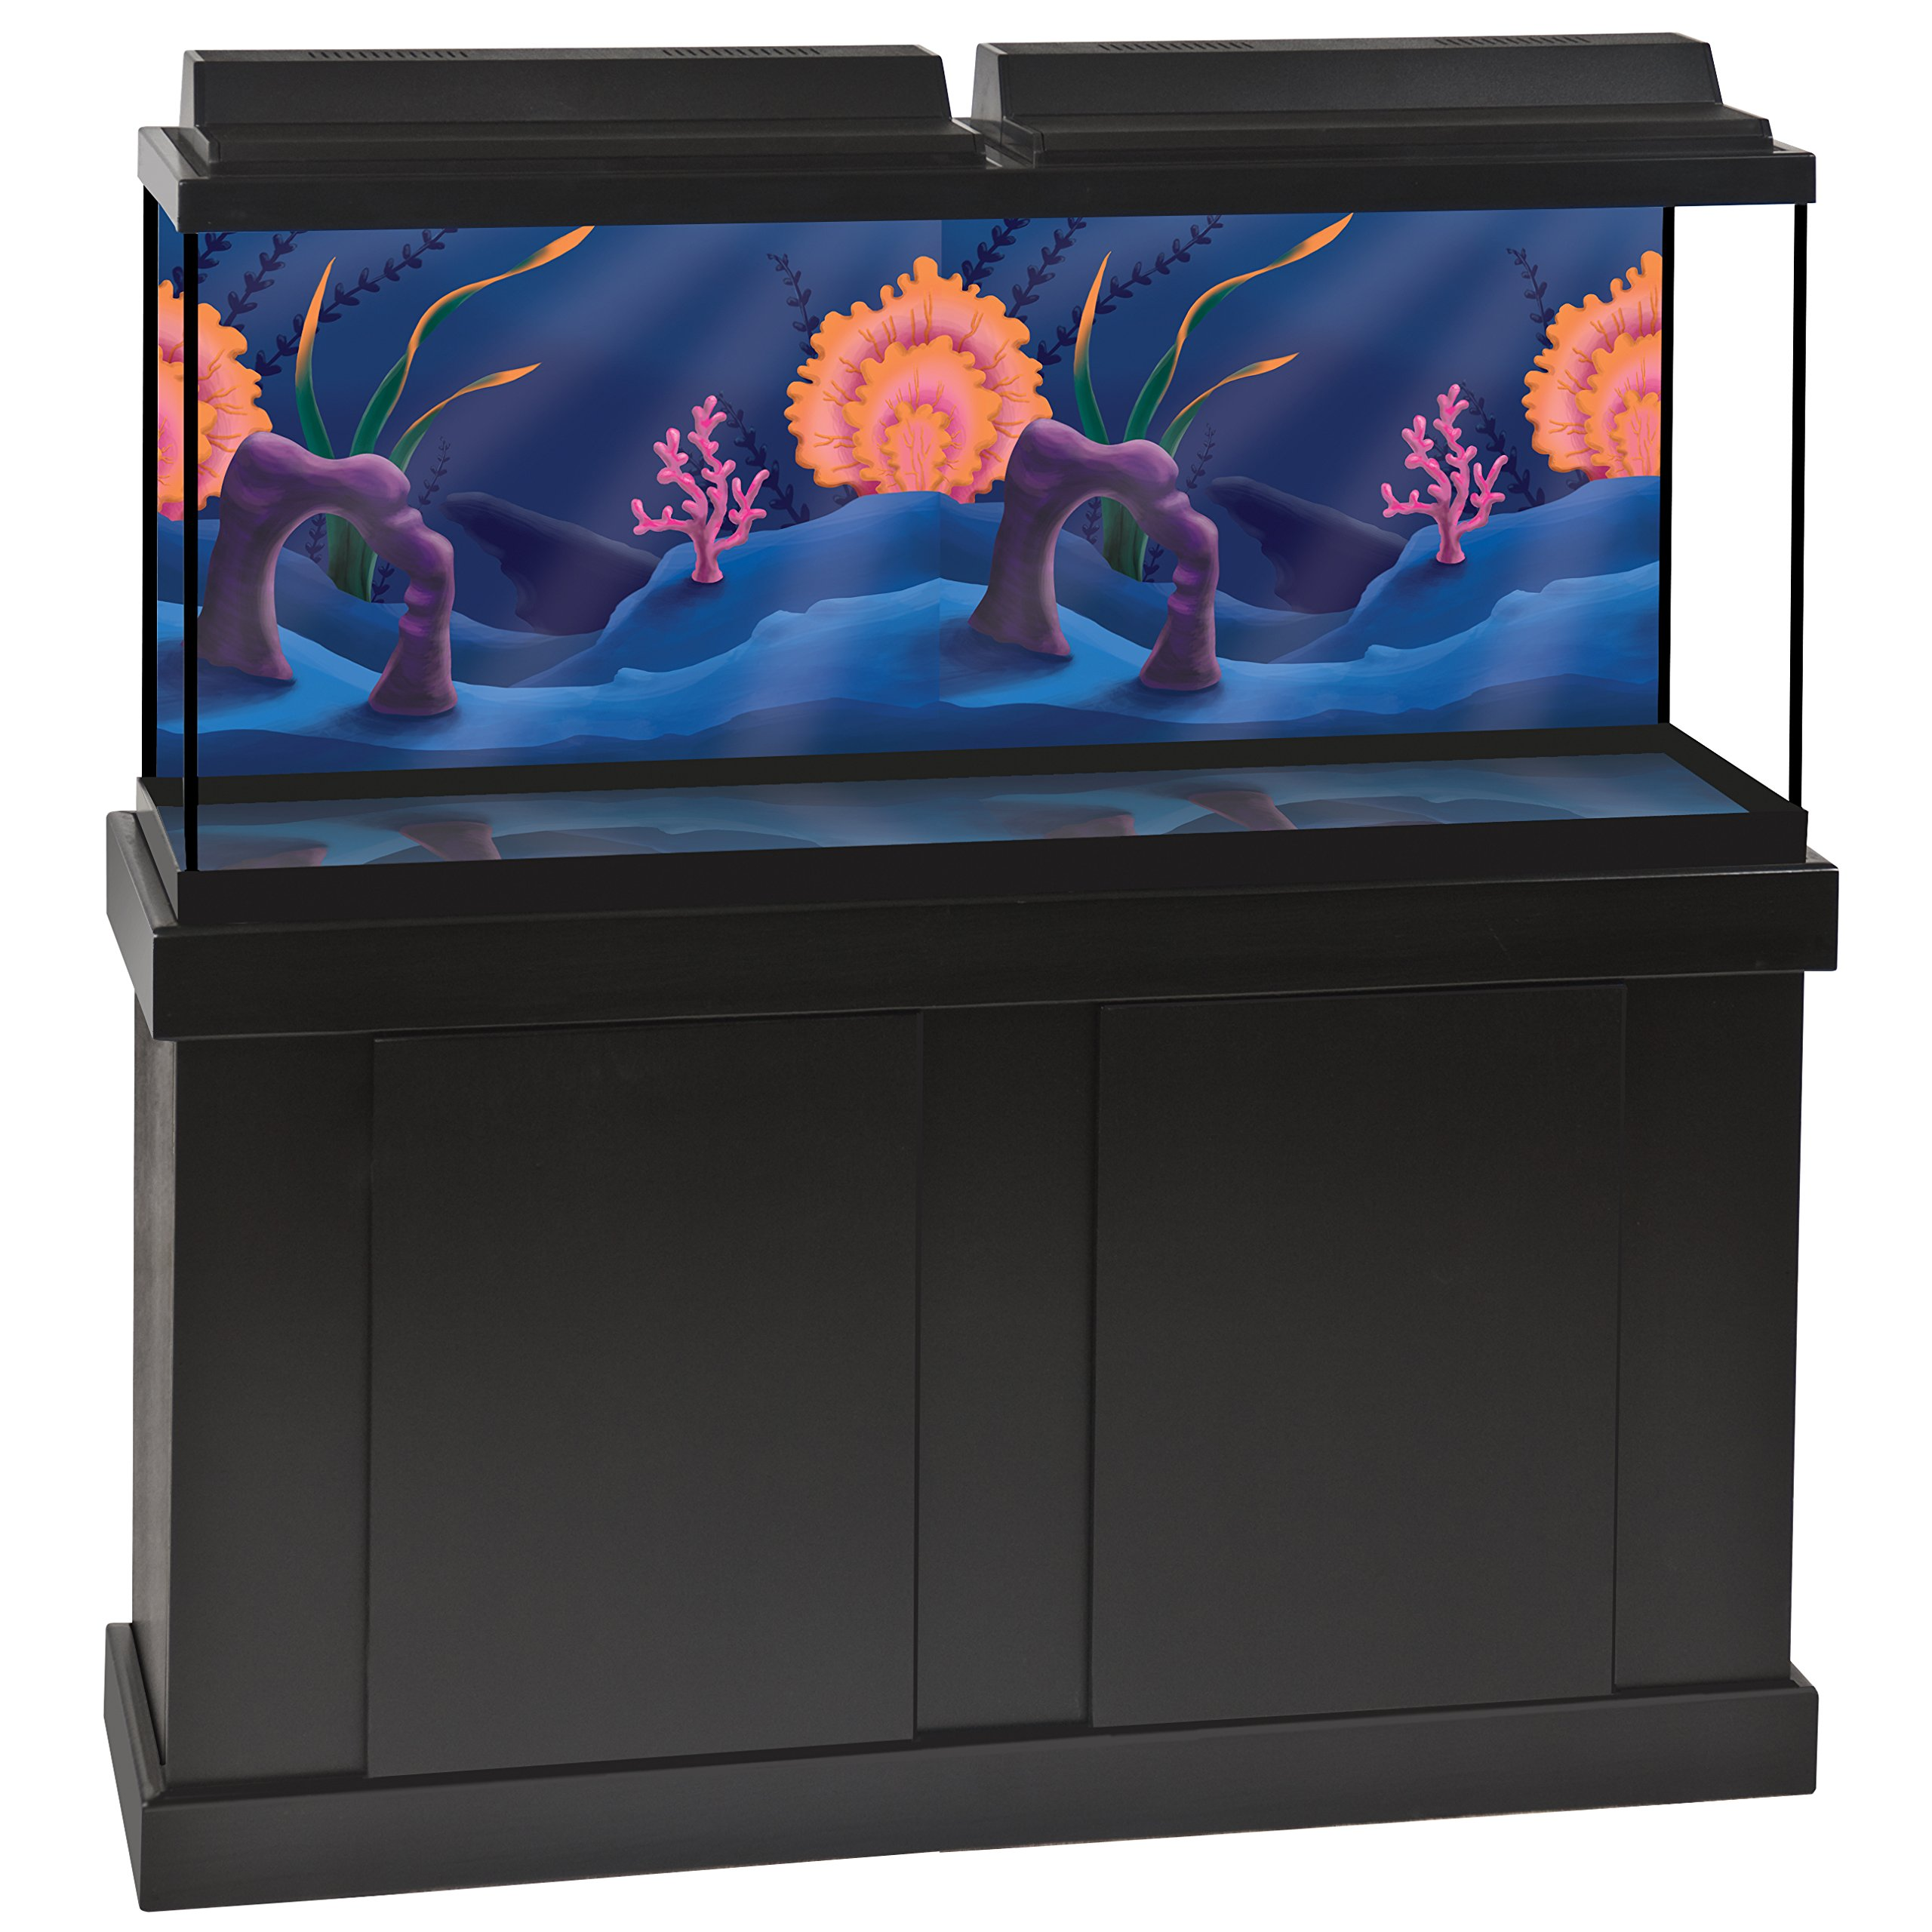 GloFish 19630 Color Changing Background